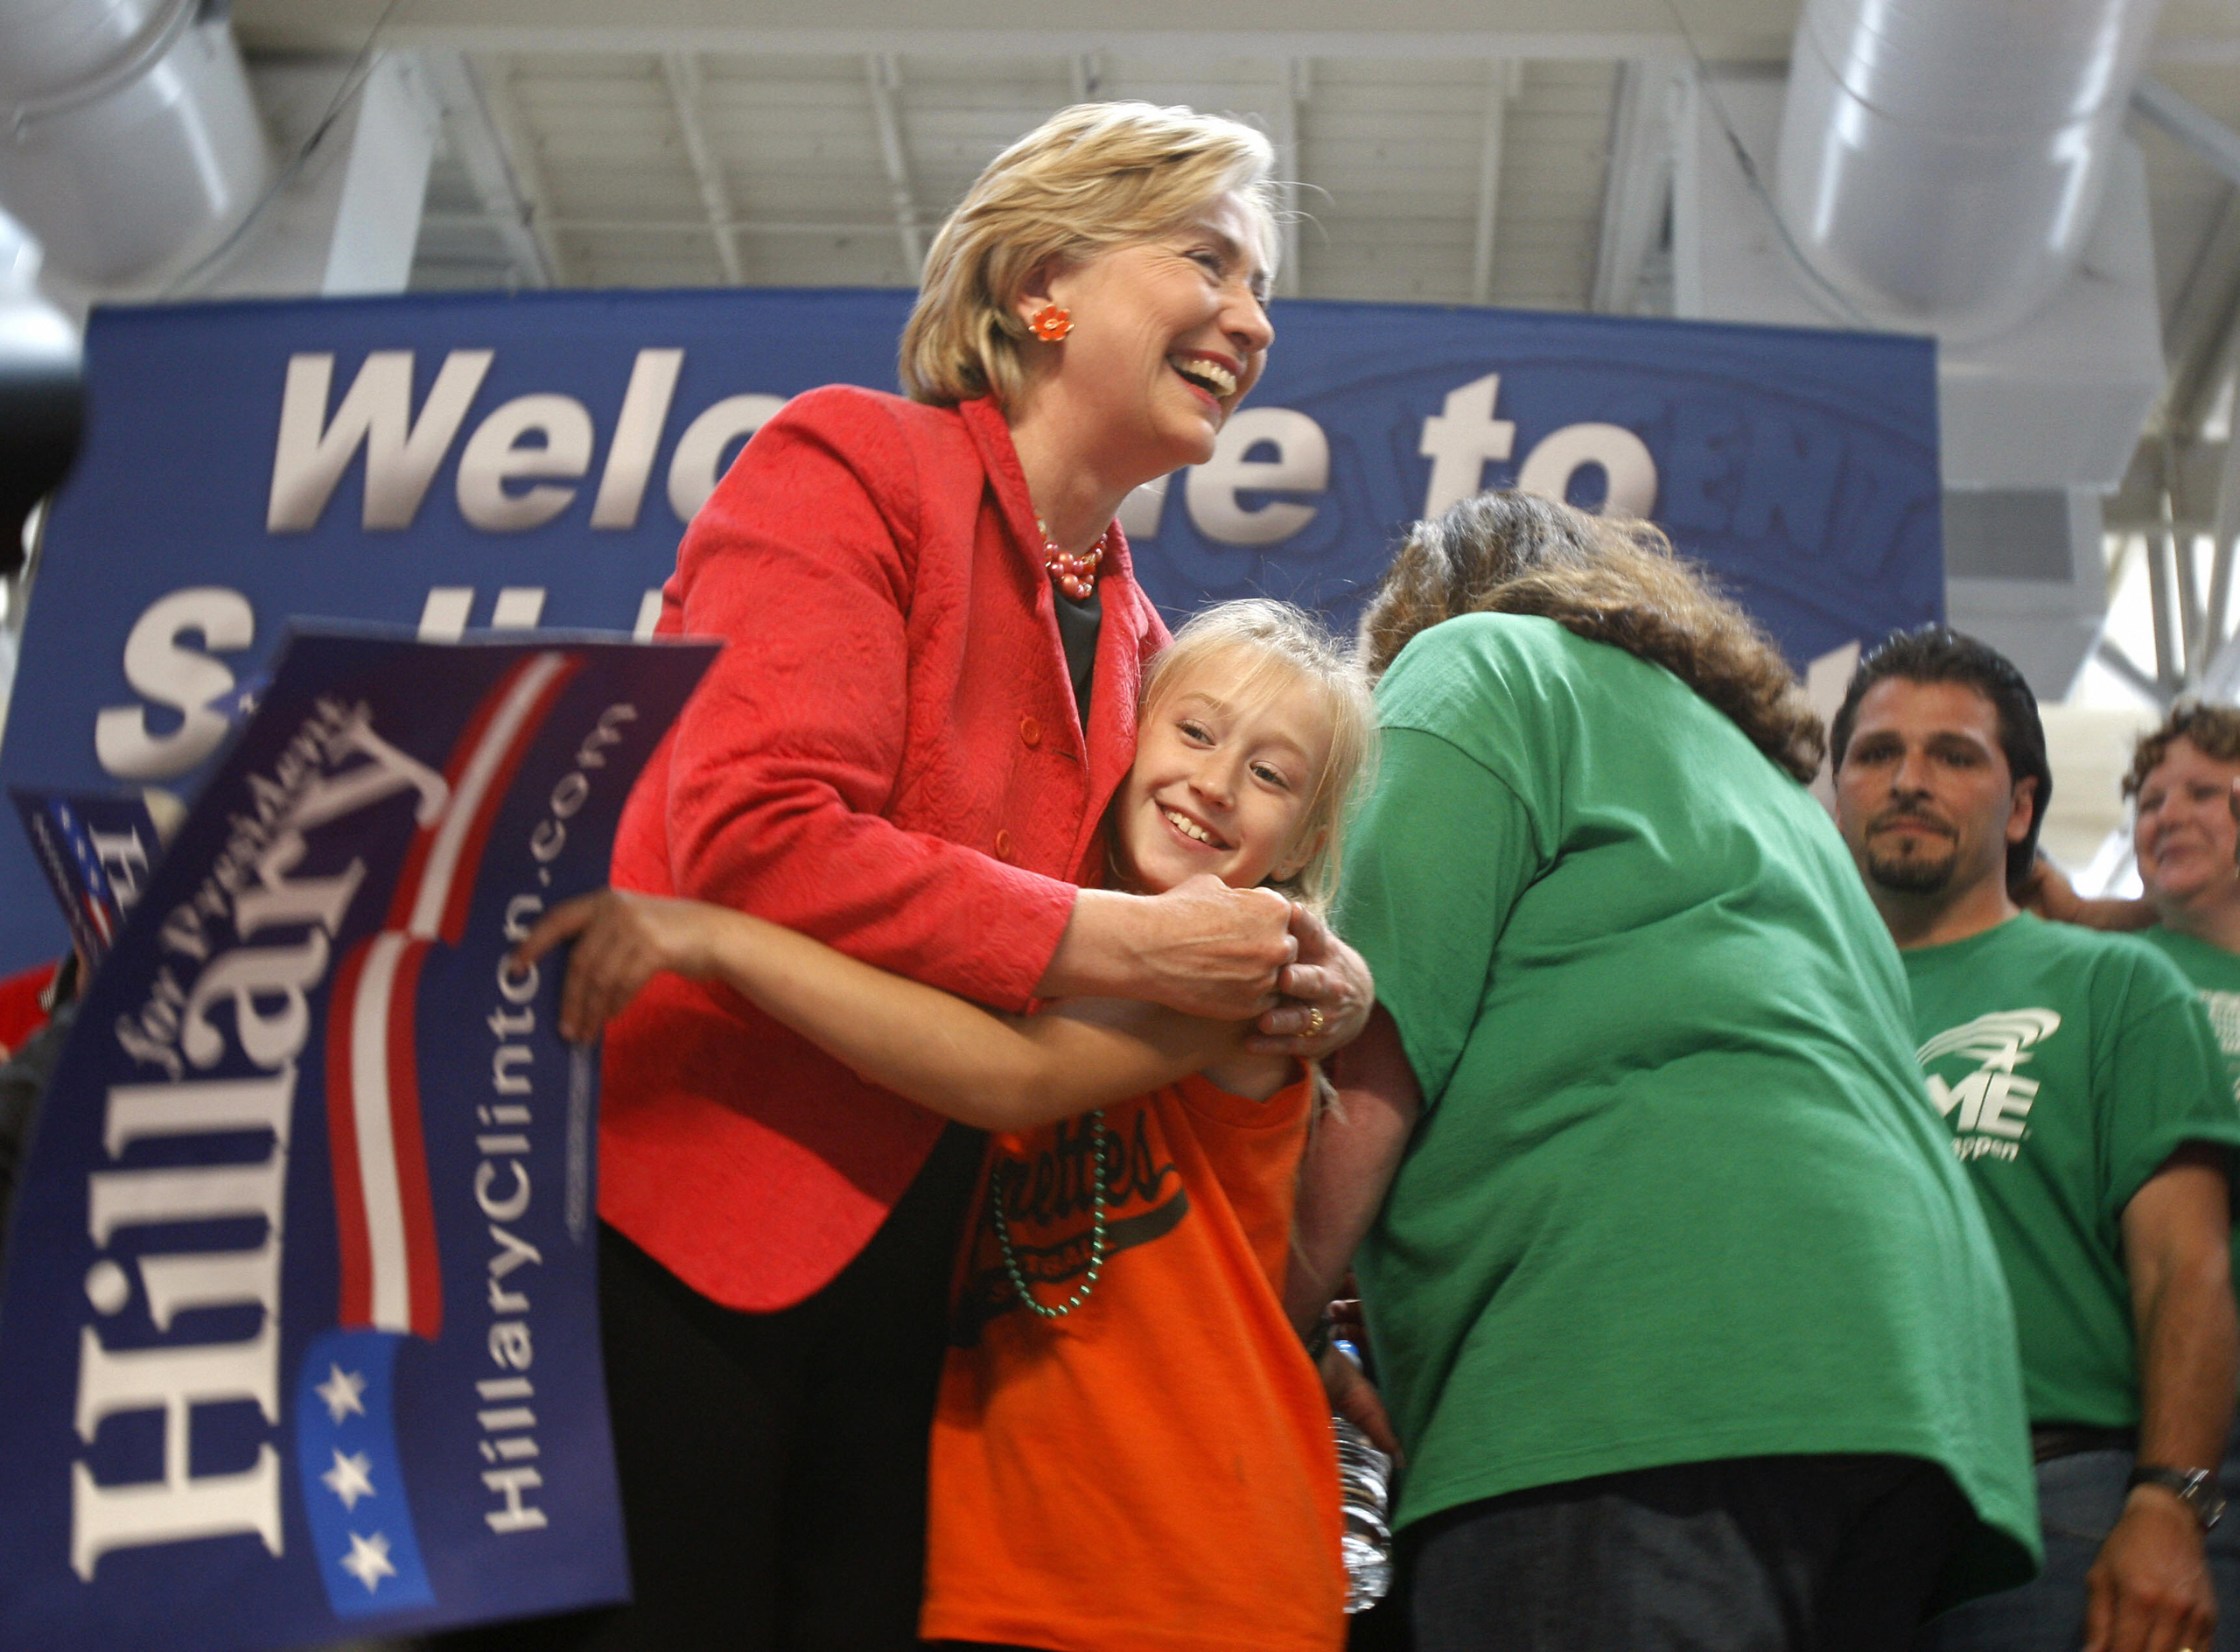 Hillary Clinton hugs a girl at the South Central Iowa Federation of Labor Rally, on Sept. 3, 2007.